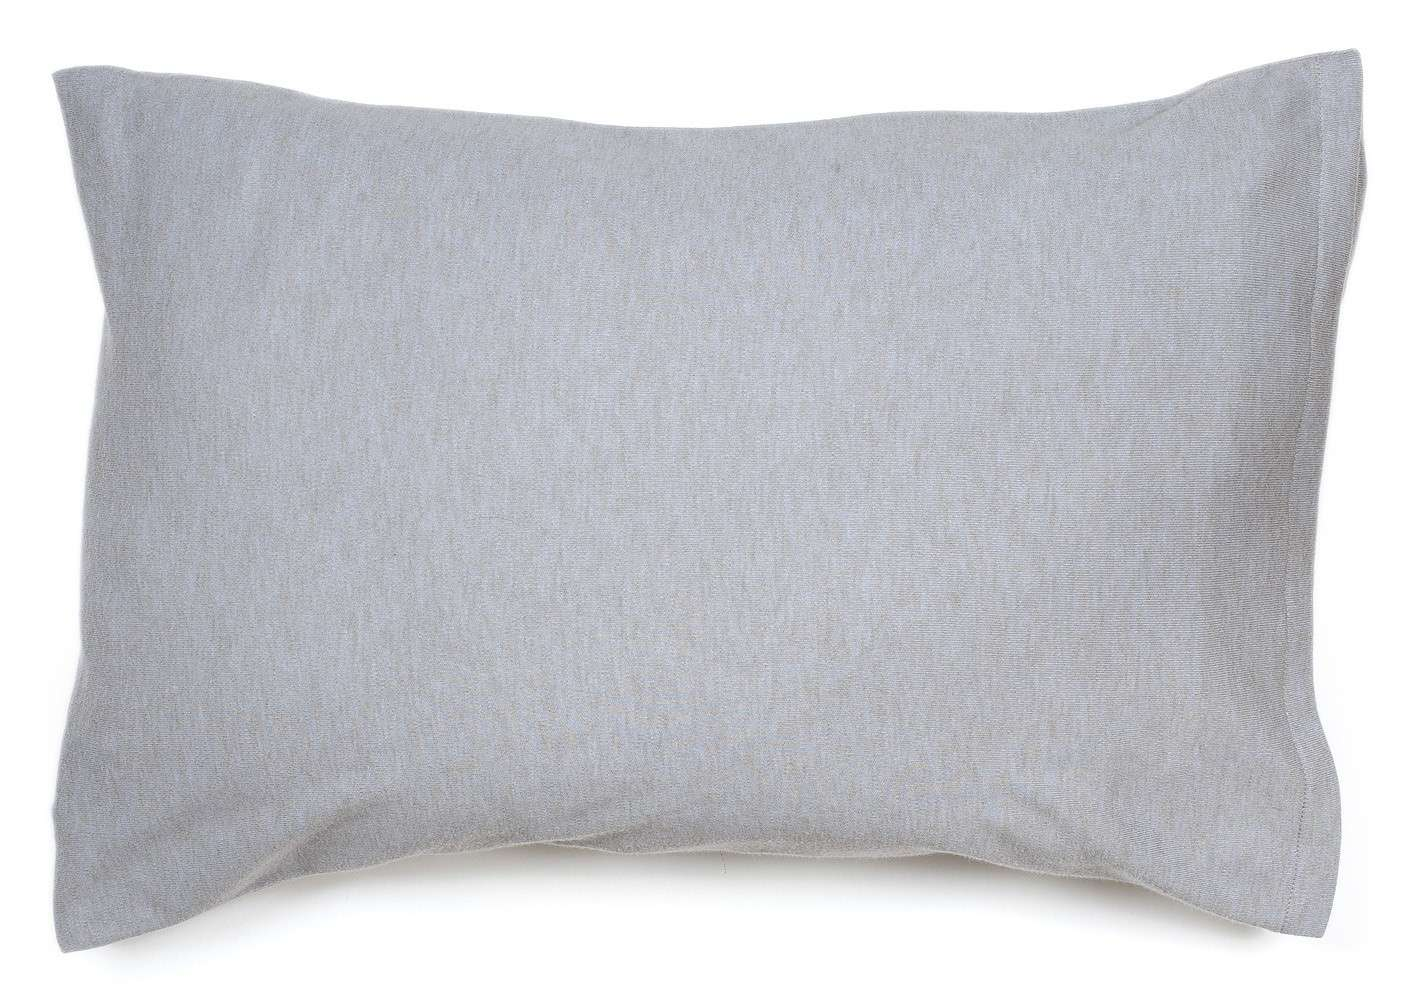 Cot Bed Pillowcase Silver Pillow Cases Luxury Children